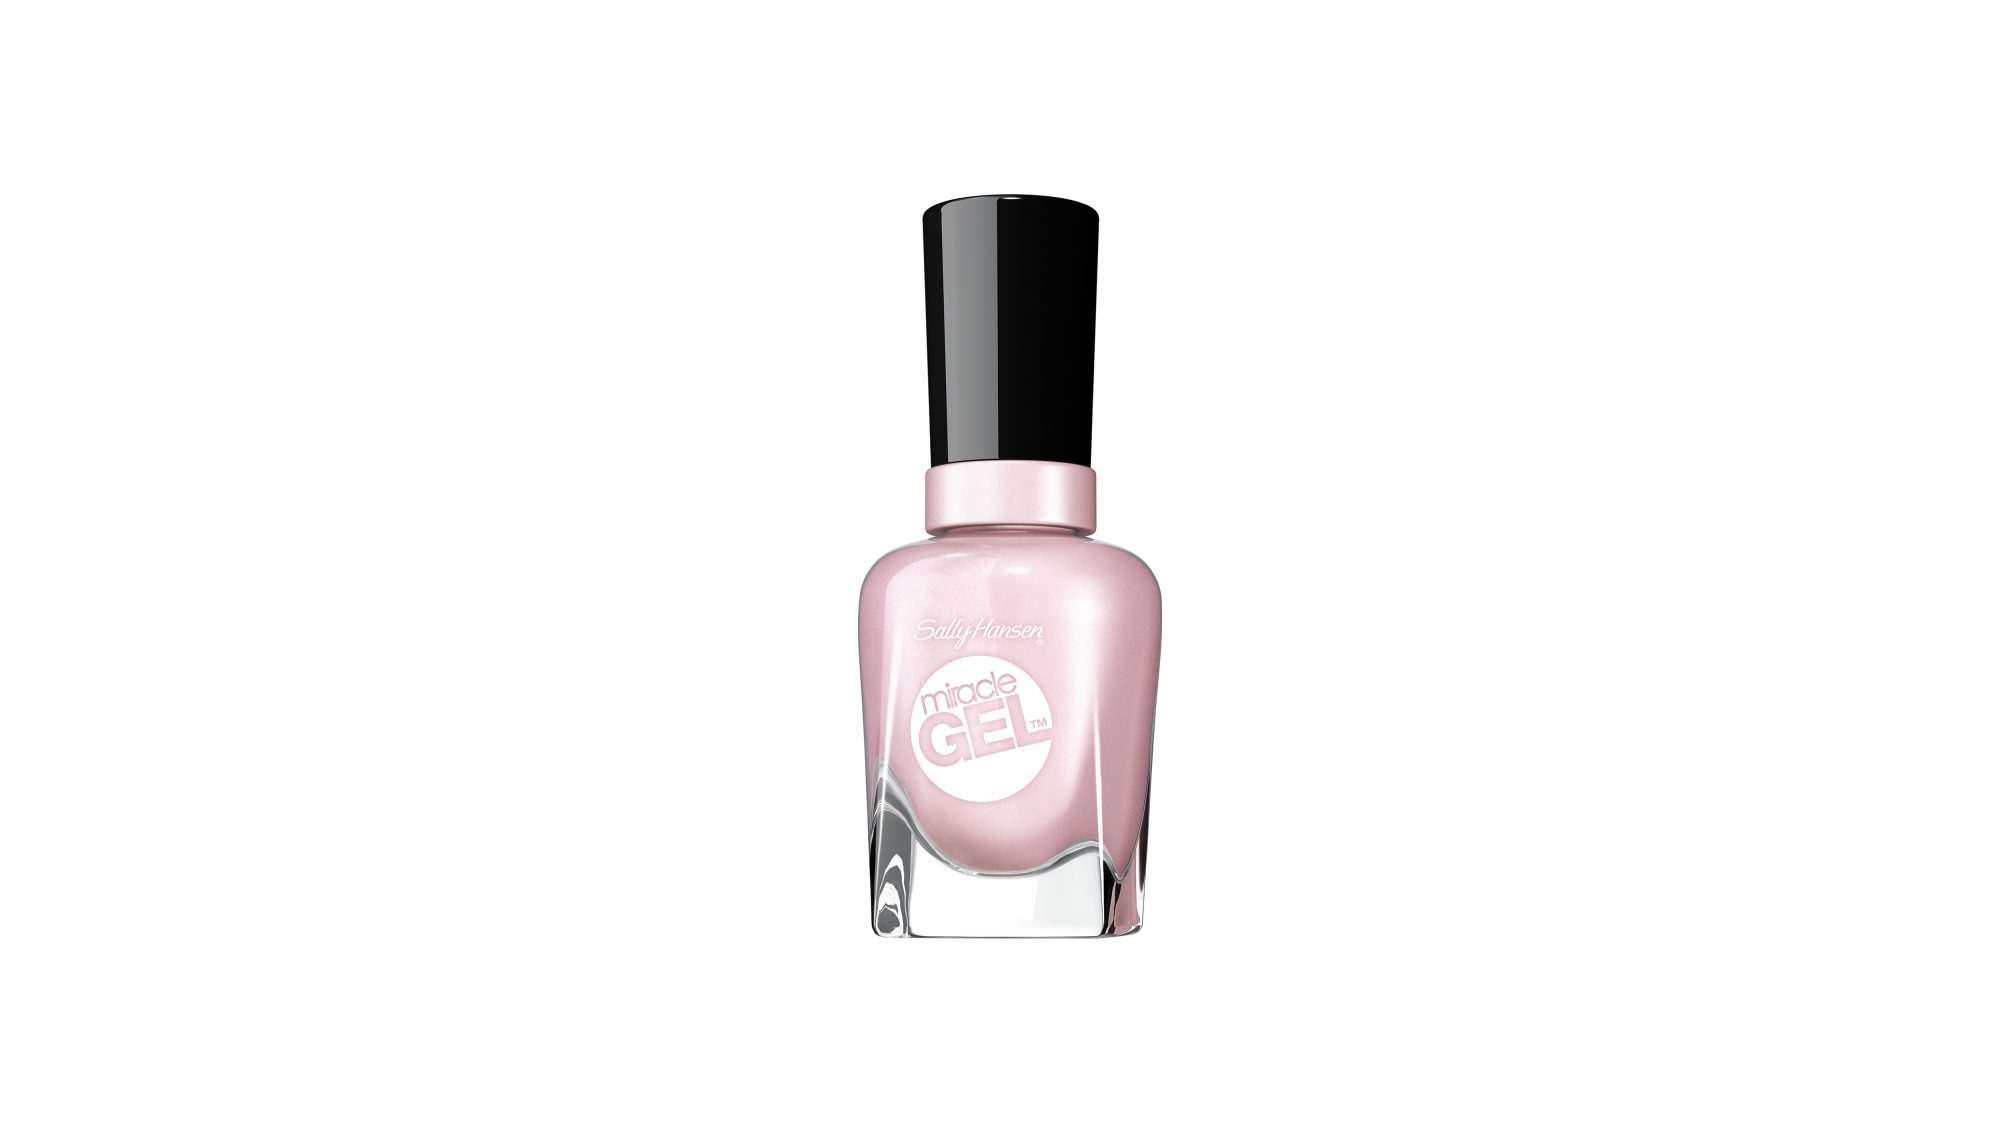 Sally Hansen Miracle Gel in Plush Blush